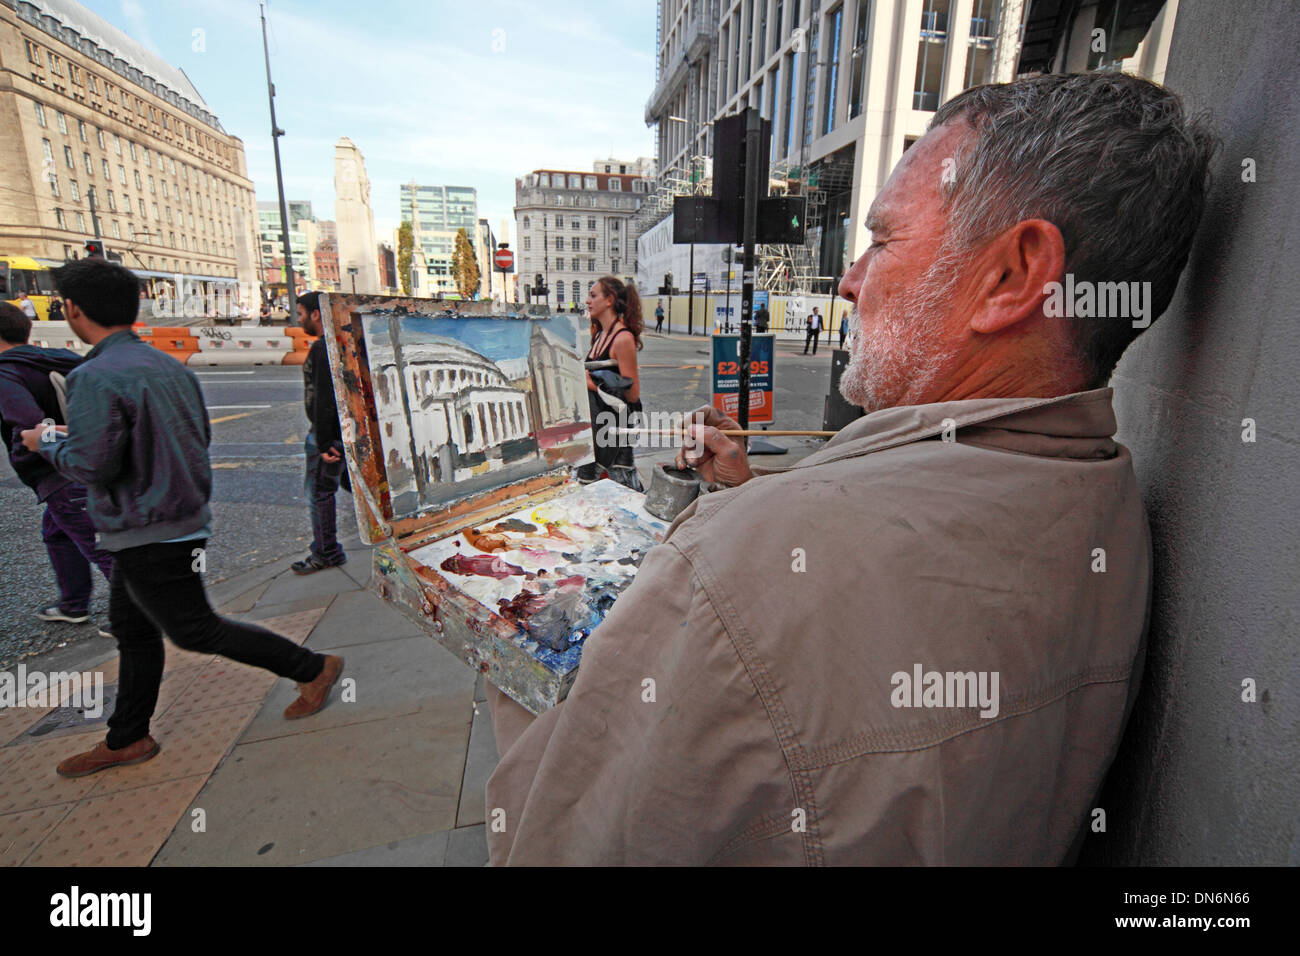 Street artist in Manchester City Centre England UK Stock Photo